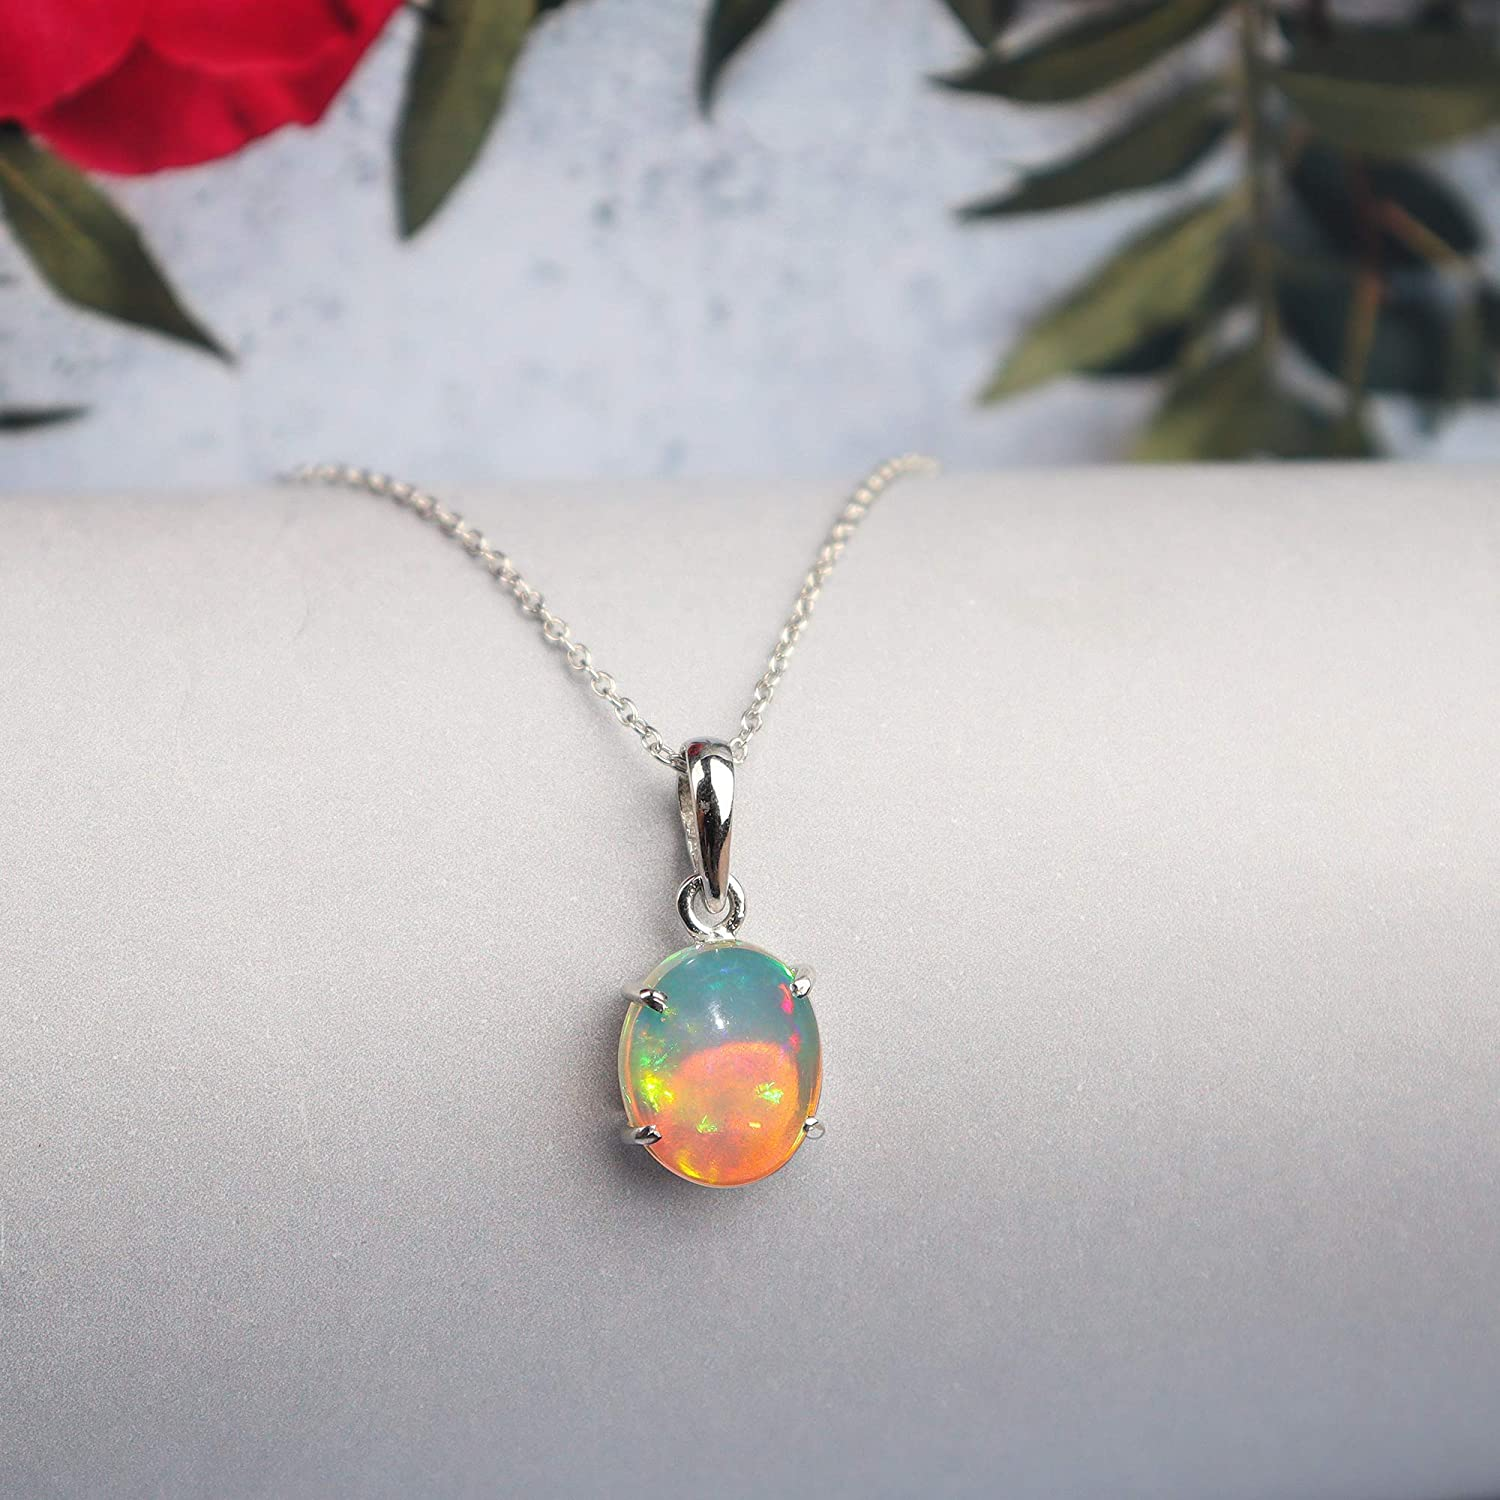 Opal In Pendant| 925 Sterling Silver Pendant For Christmas Gift Vintage Silver Pendant 100/%Natural Ethiopian Polished Opal Gift For Her